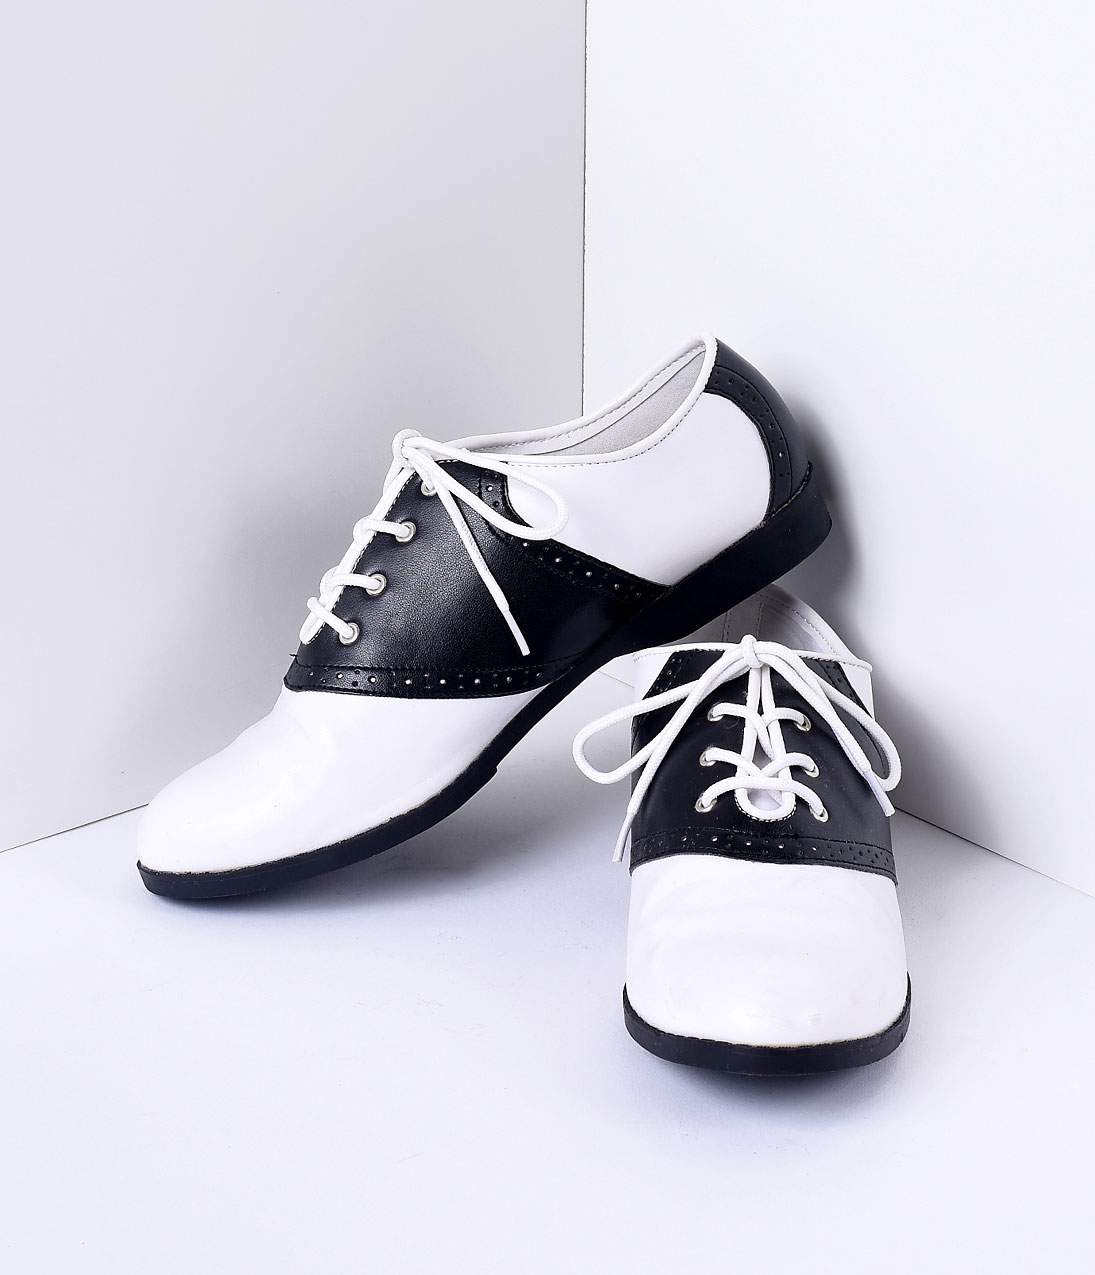 1950s Style Shoes | Heels, Flats, Saddle Shoes Black  White Classic Lace Up Saddle Shoes $48.00 AT vintagedancer.com